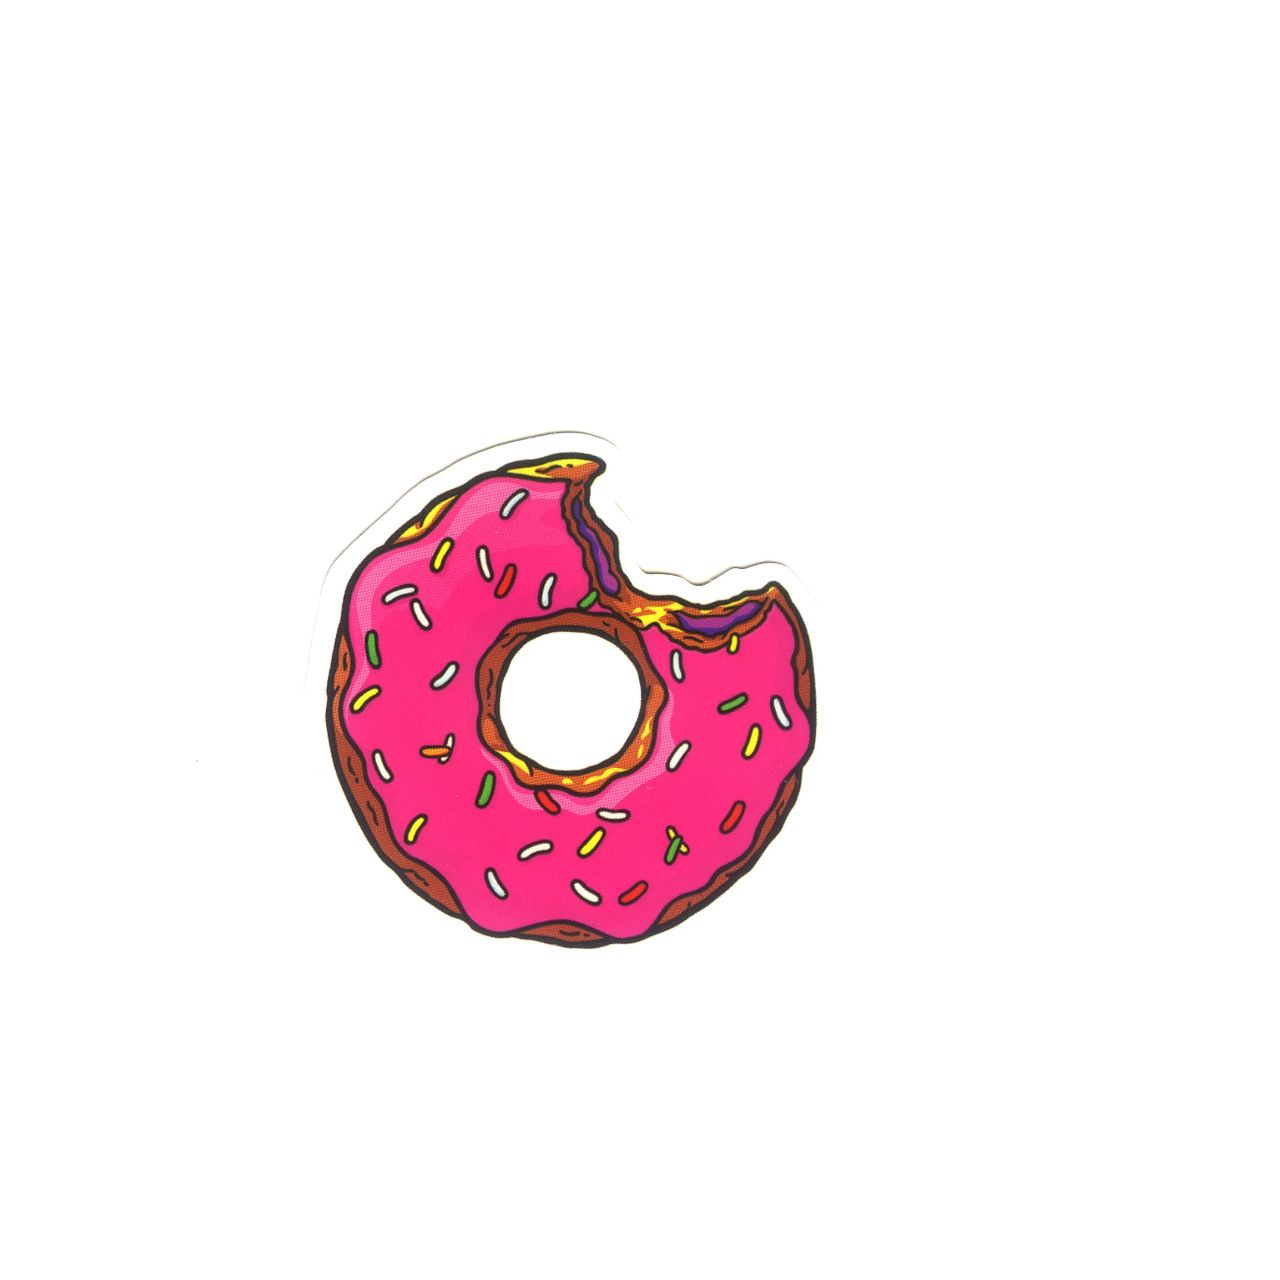 Gravity Falls All Characters Wallpaper 1145 The Simpsons Donut 4 Cm Small Size Decal Sticker